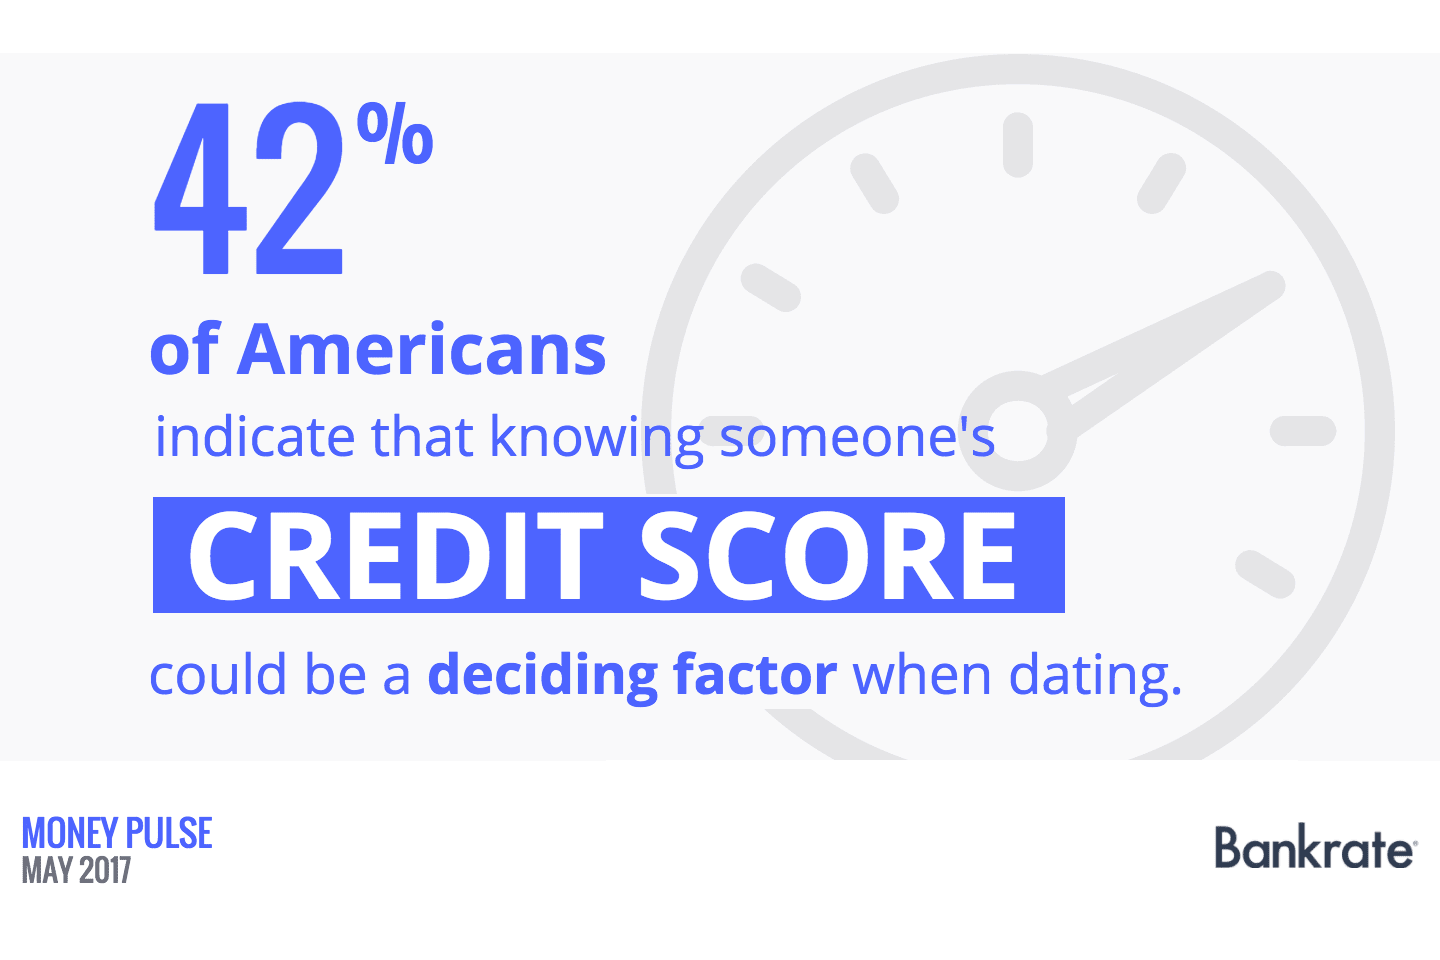 42% of Americans indicate that knowing someone's credit score could be a deciding factor when dating